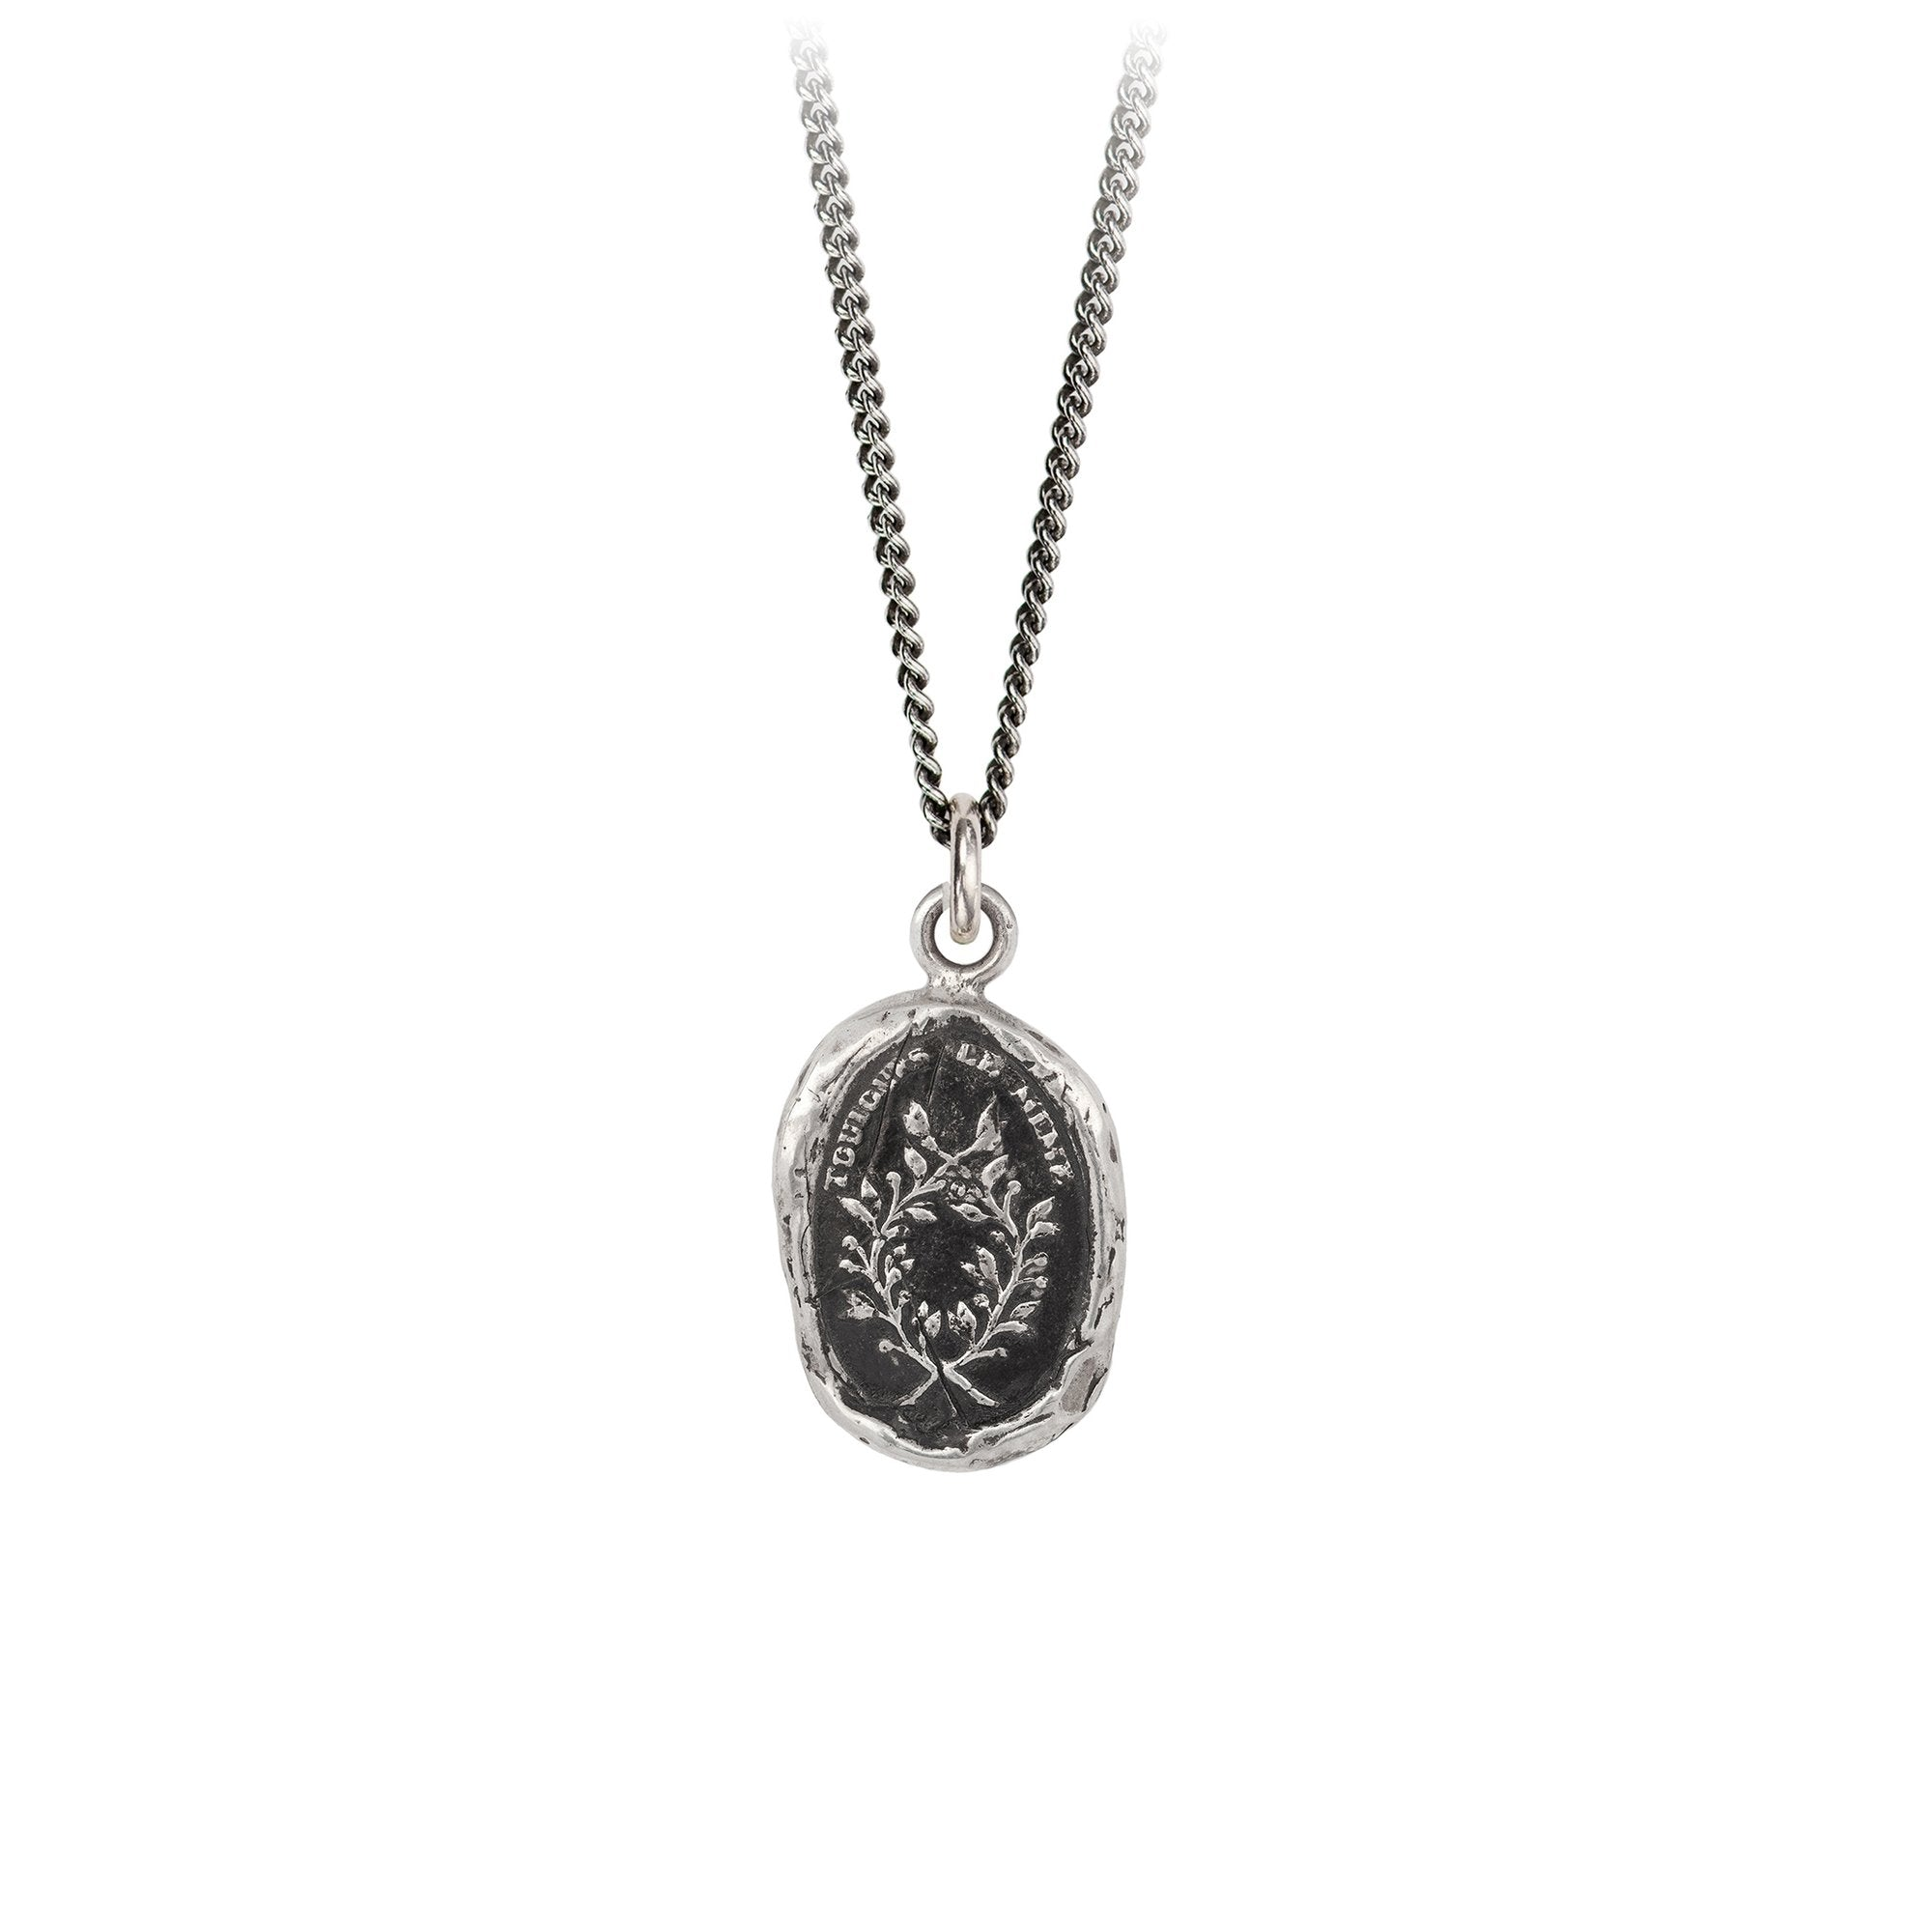 Integrity Talisman Pendant - Heart of the Home PA